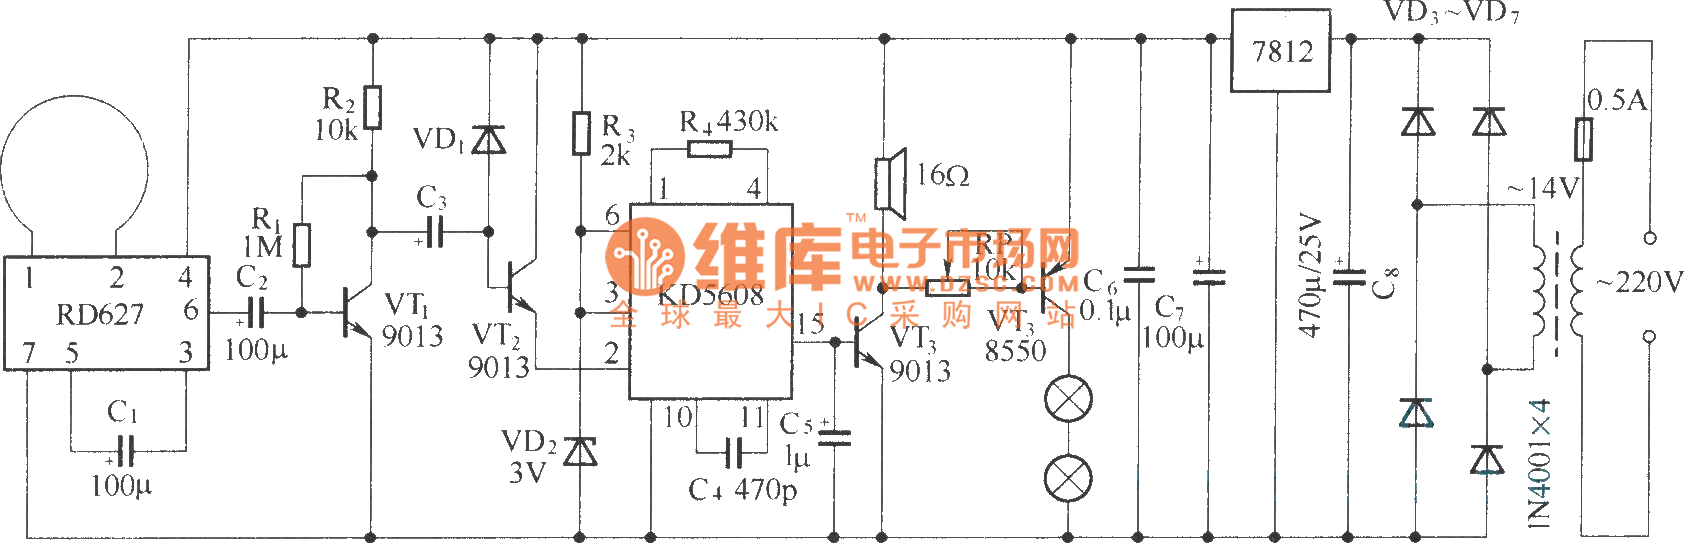 Home Guard Composed Of Rd627 Electronic Dog Control Circuit Thermometer2 Sensorcircuit Diagram Seekic